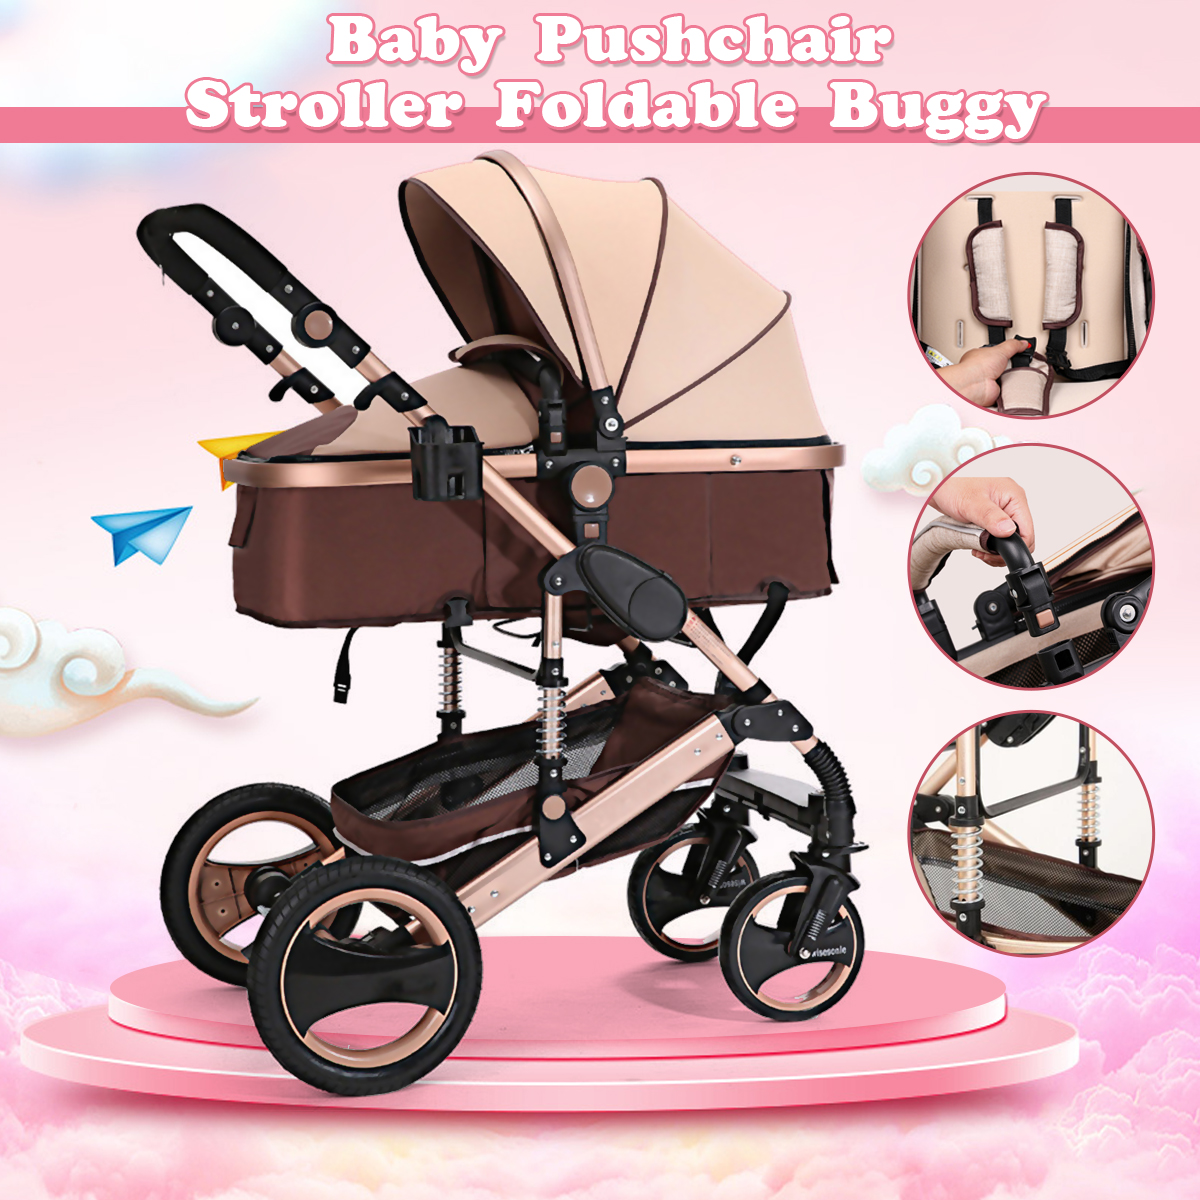 8 in 1 Foldable Four Wheel Stroller for 0-3 Years Old Baby Warranty Baby Stroller Carriage Travel Pram Pushchair RU STOCK baby four wheel playground toy 1 3 years old small rv hand pushing stroller baby walker